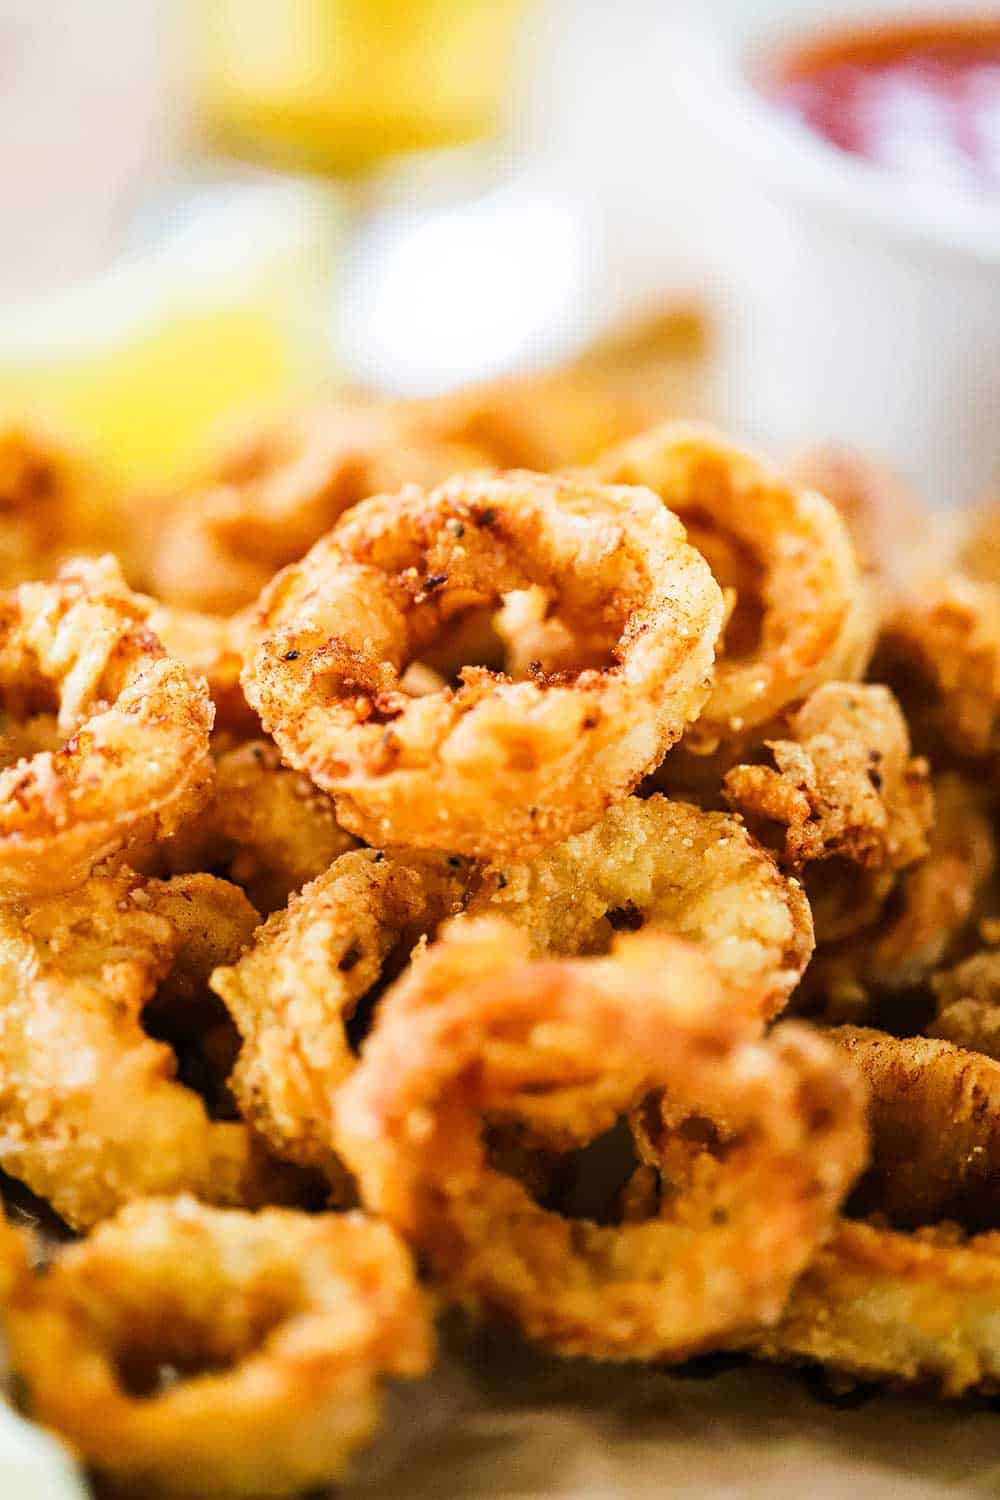 A pile of fried calamari sitting next to a small white bowl filled with marinara sauce.